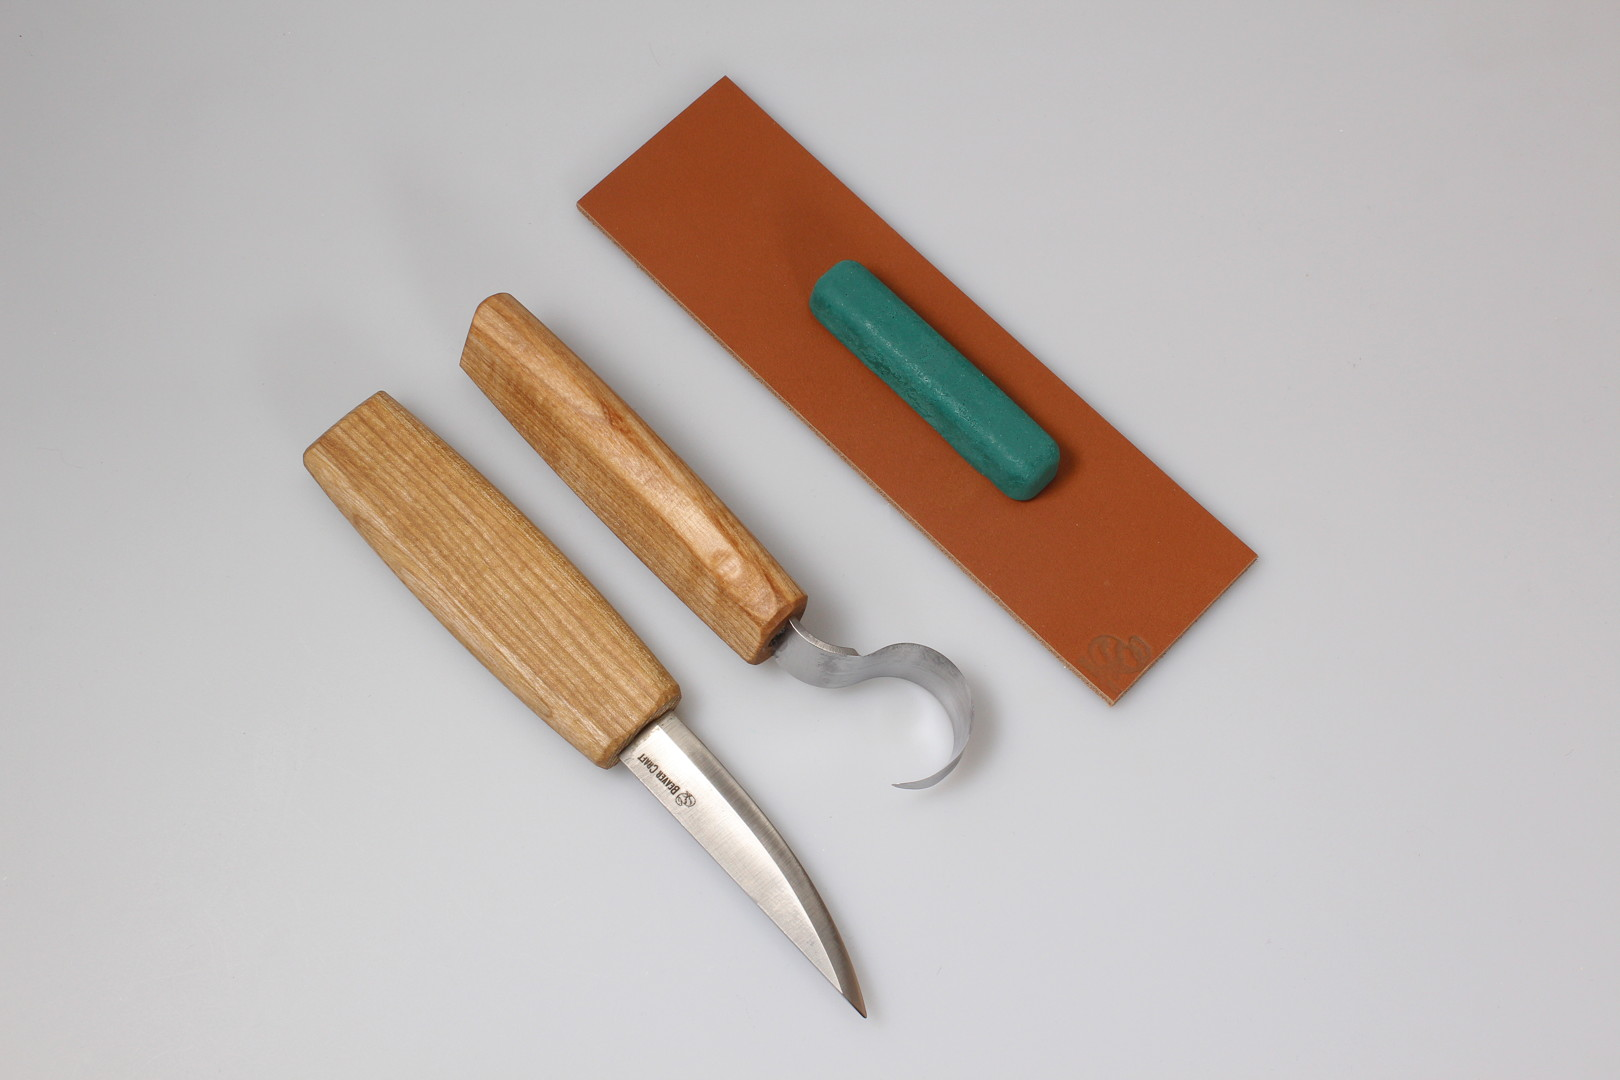 S03 – Spoon Carving Tool Set for Beginners - 3